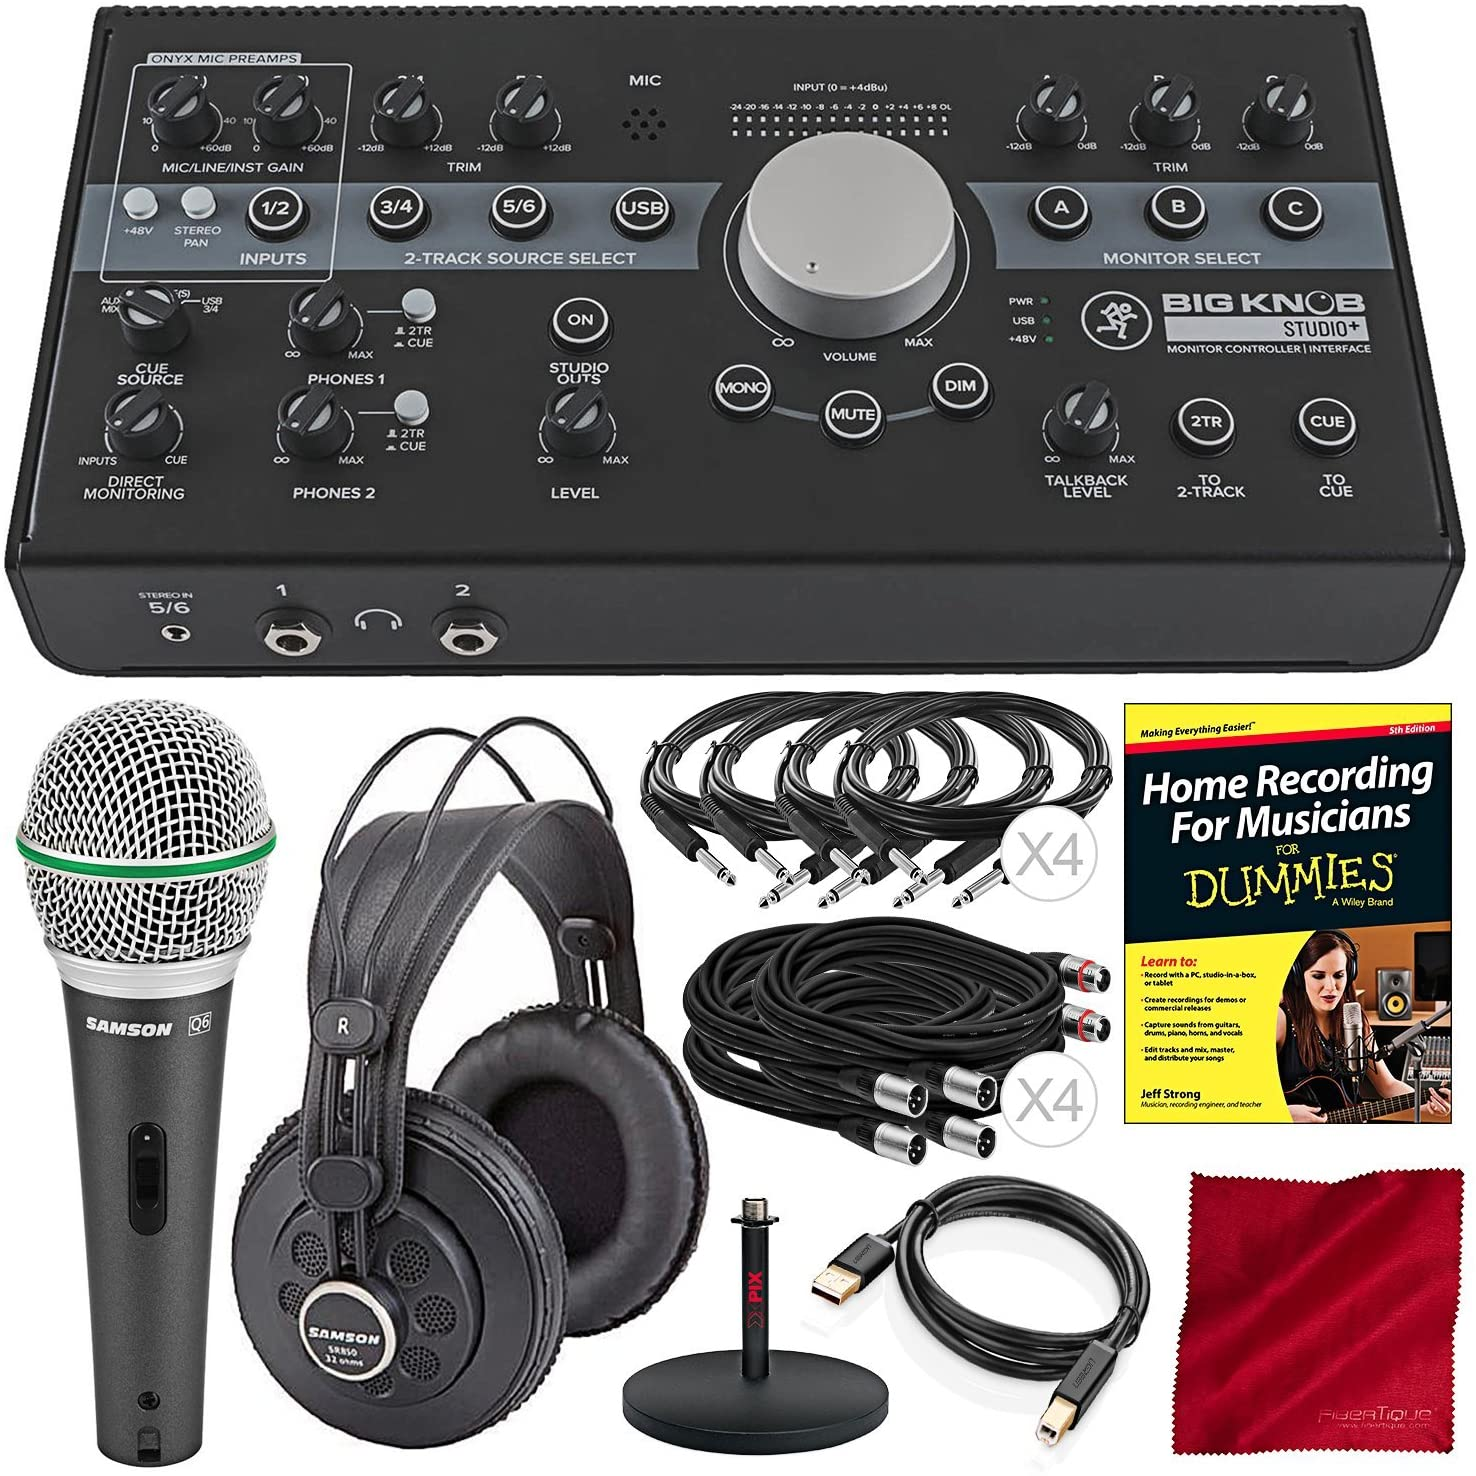 Mackie Big Knob Studio Plus Monitor Controller Interface and Platinum Studio Bundle with Dynamic Microphone + Studio Headphones + Home Recording Guide + Much More